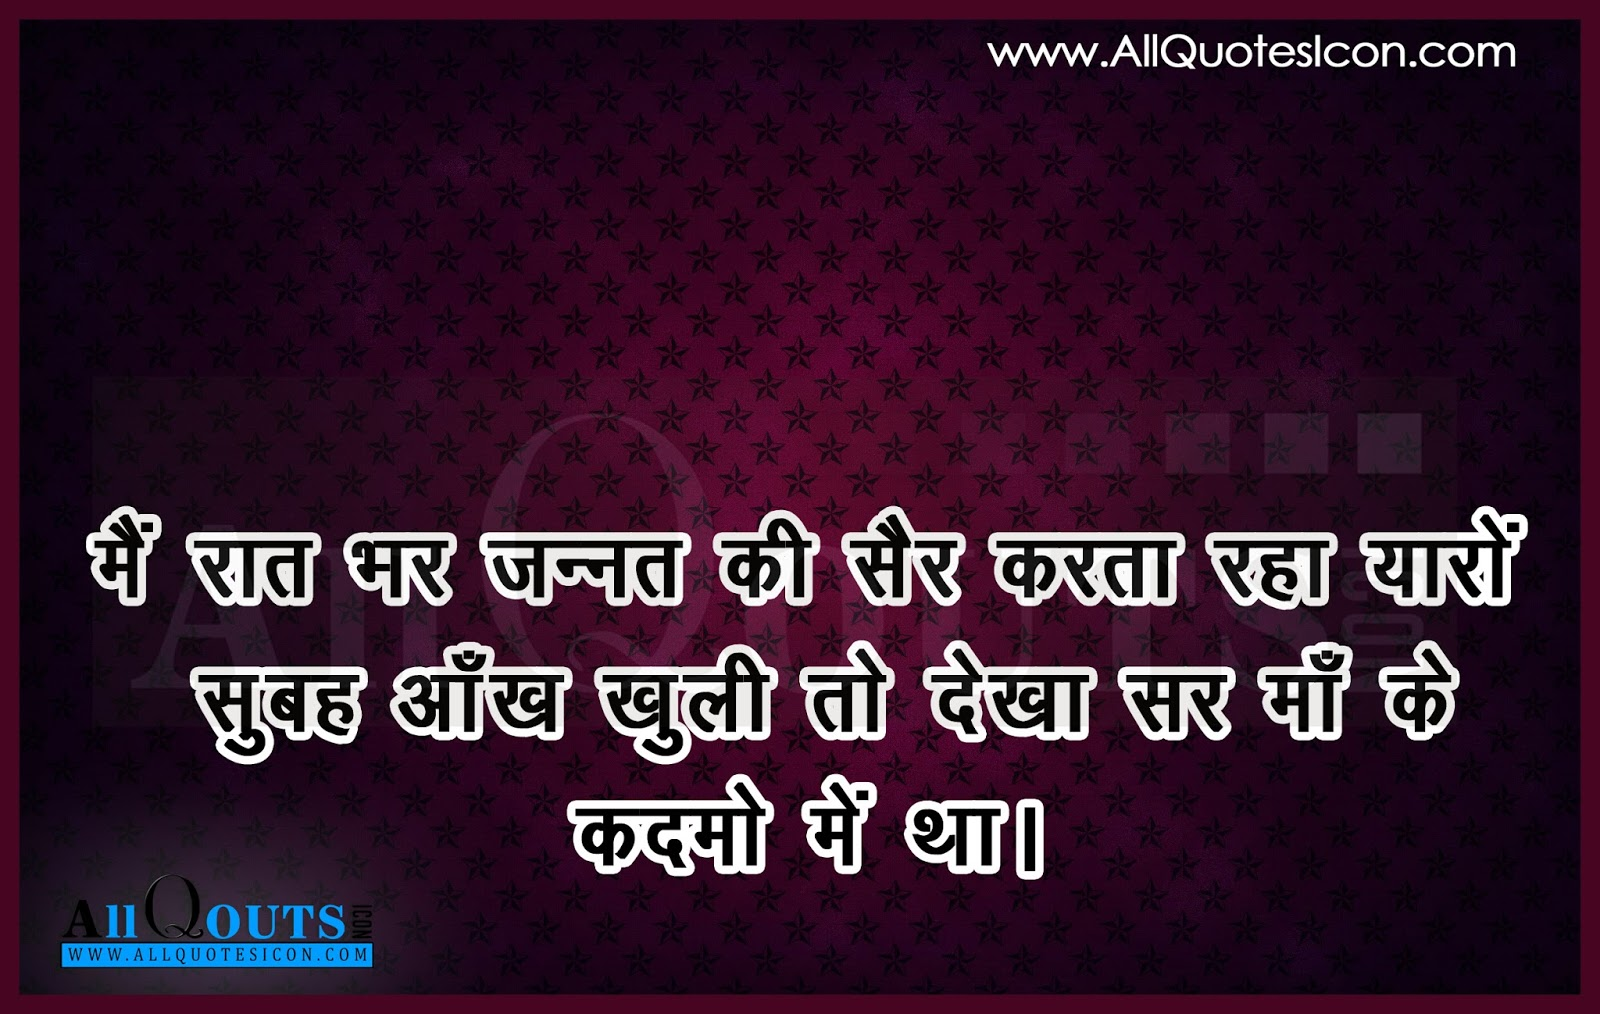 Funny Quotes On Love In Hindi With Images : Hindi Quotes , Life Quotes in Hindi 10:58:00 PM